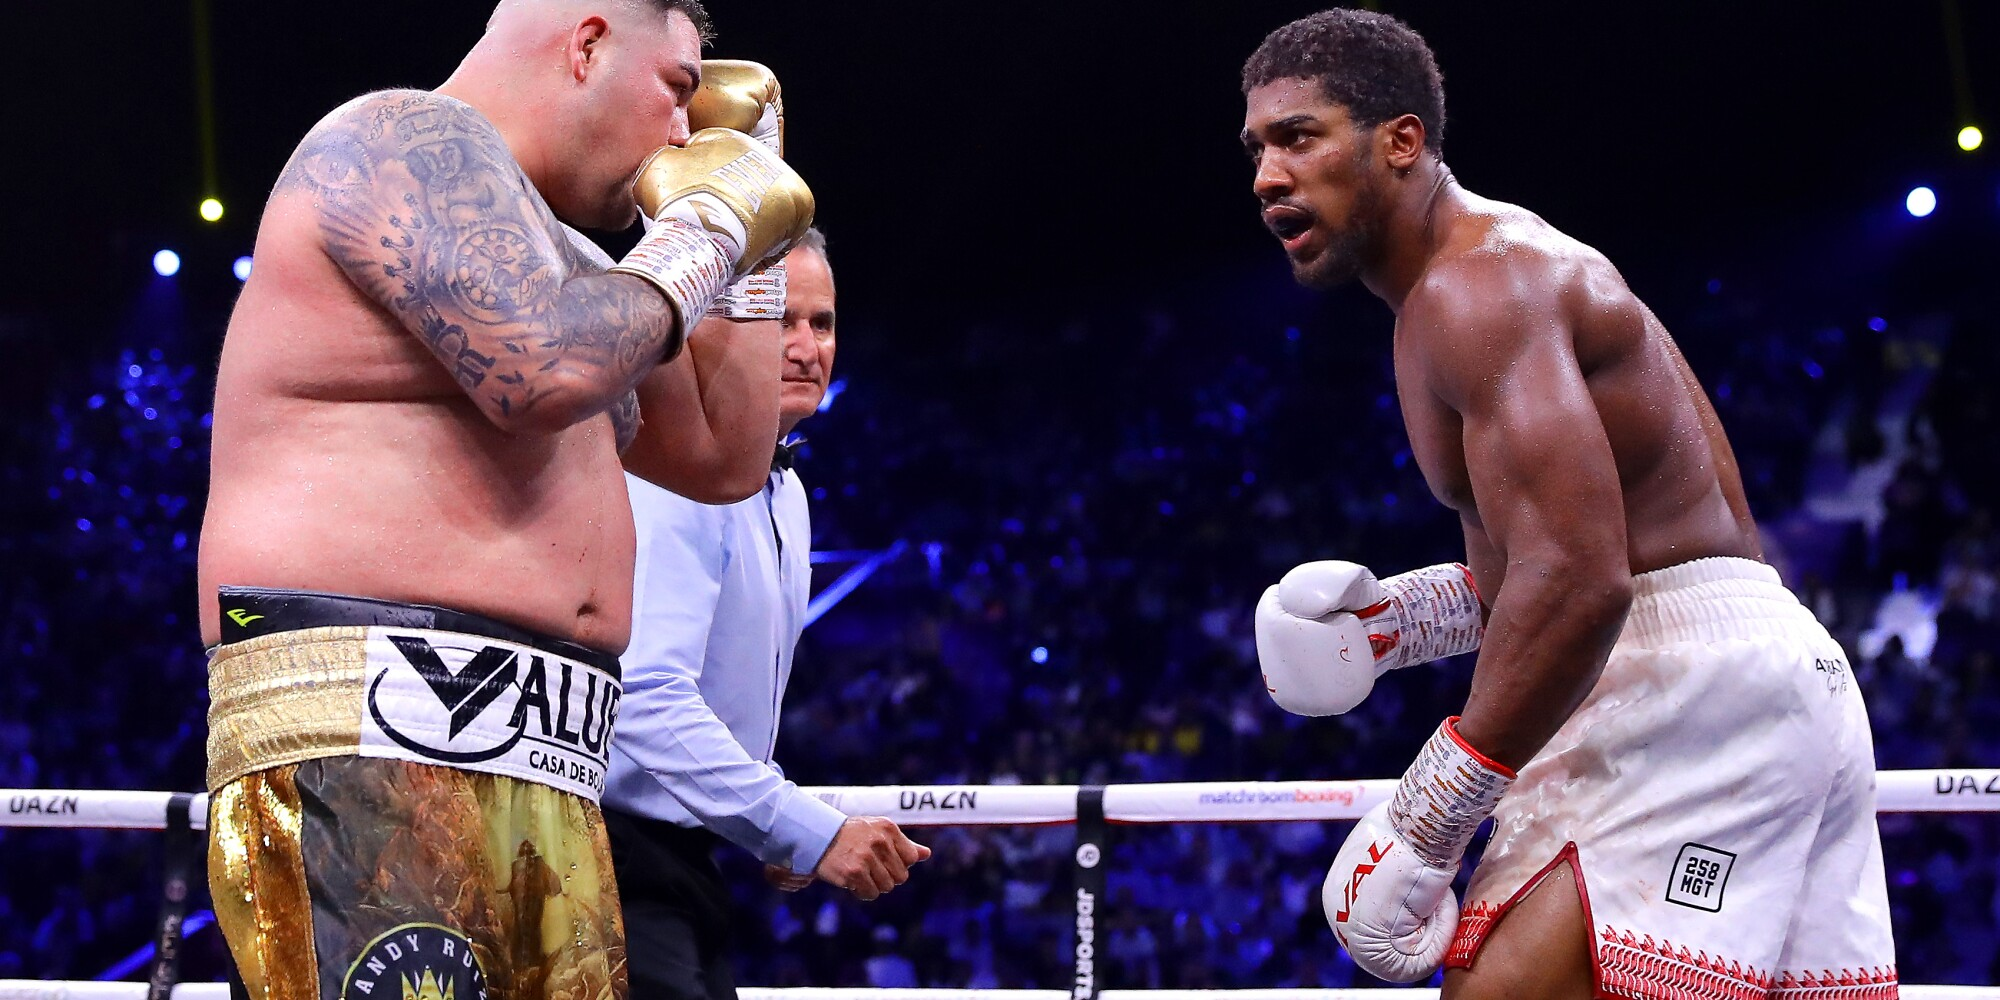 Anthony Joshua, right, taunts Andy Ruiz Jr. during their heavyweight title match Dec. 7, 2019, in Saudi Arabia.